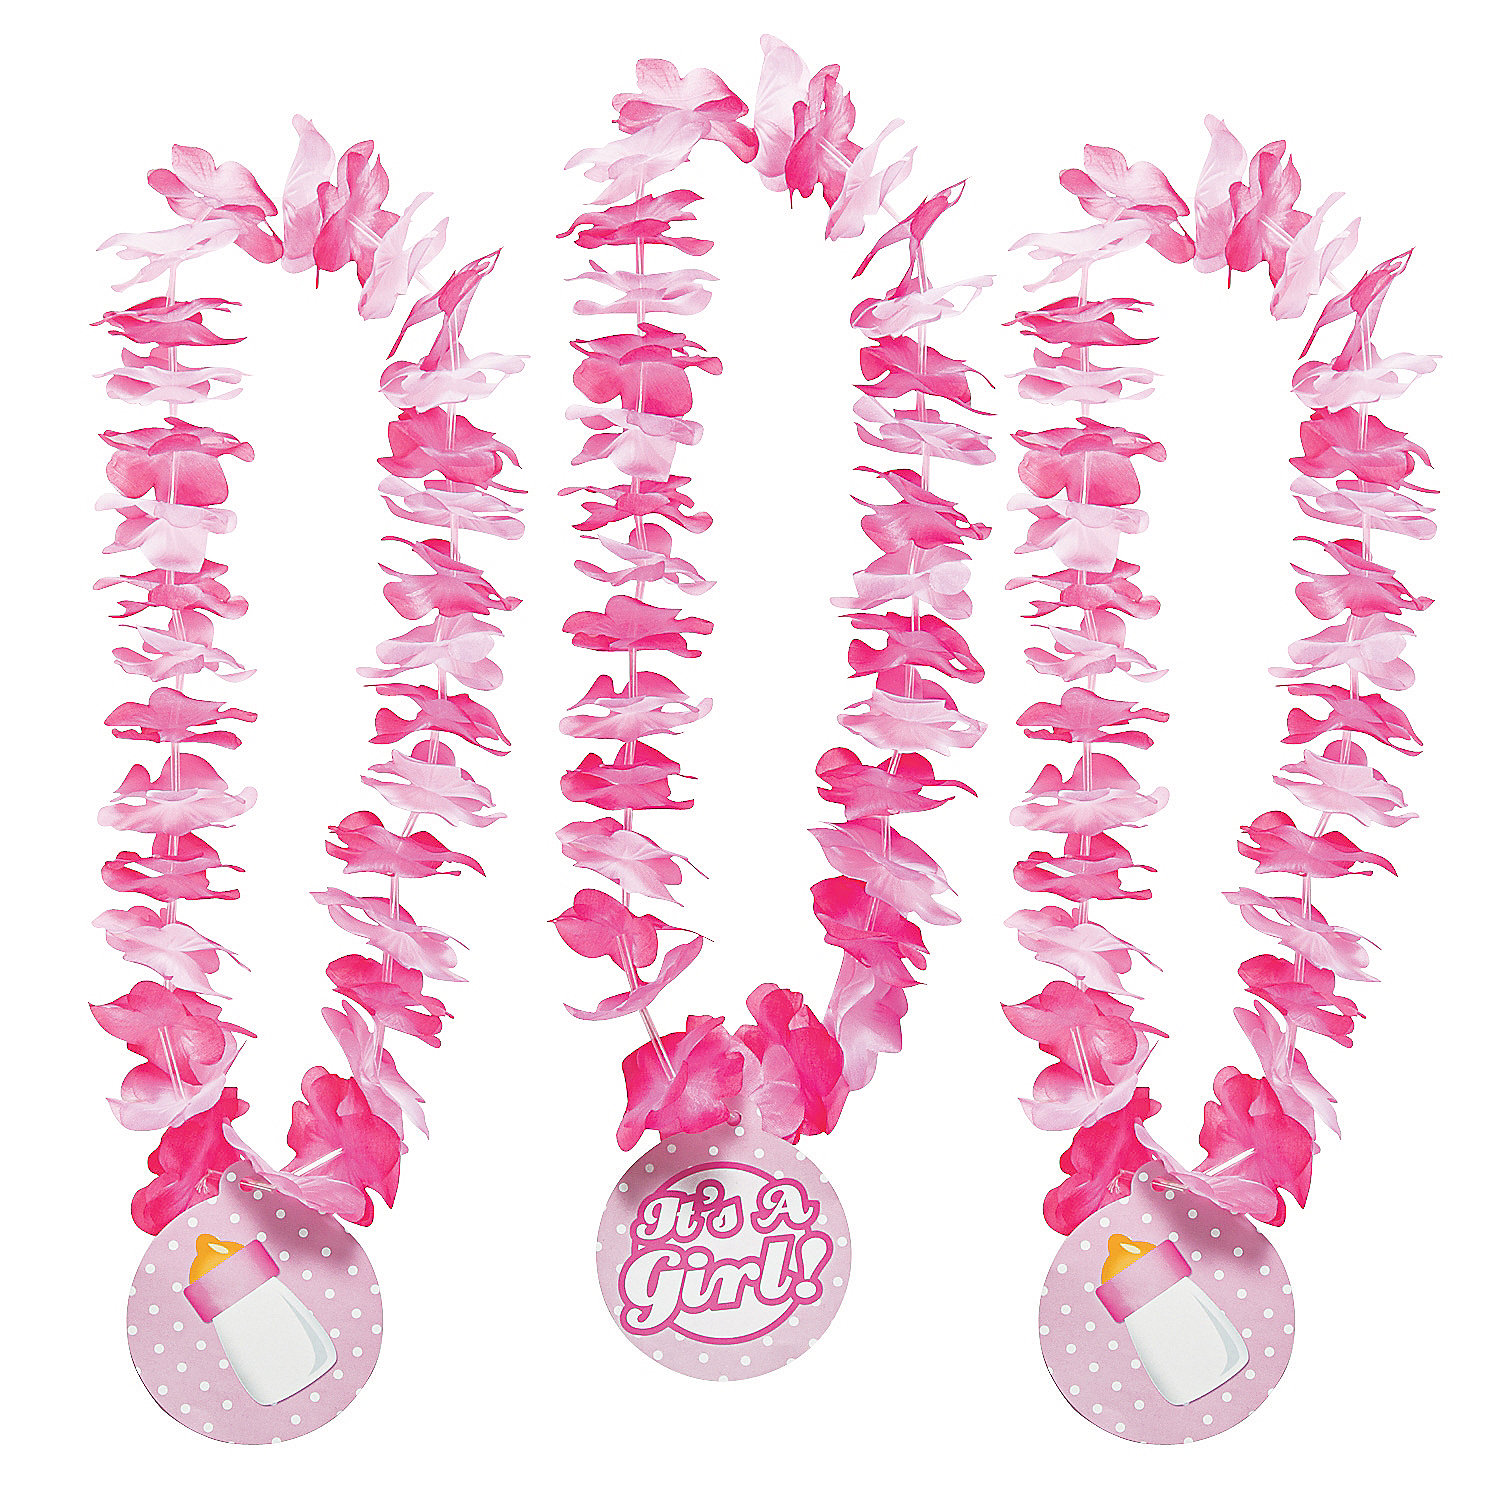 Baby Shower Party Supplies amp Decorations  Oriental Trading